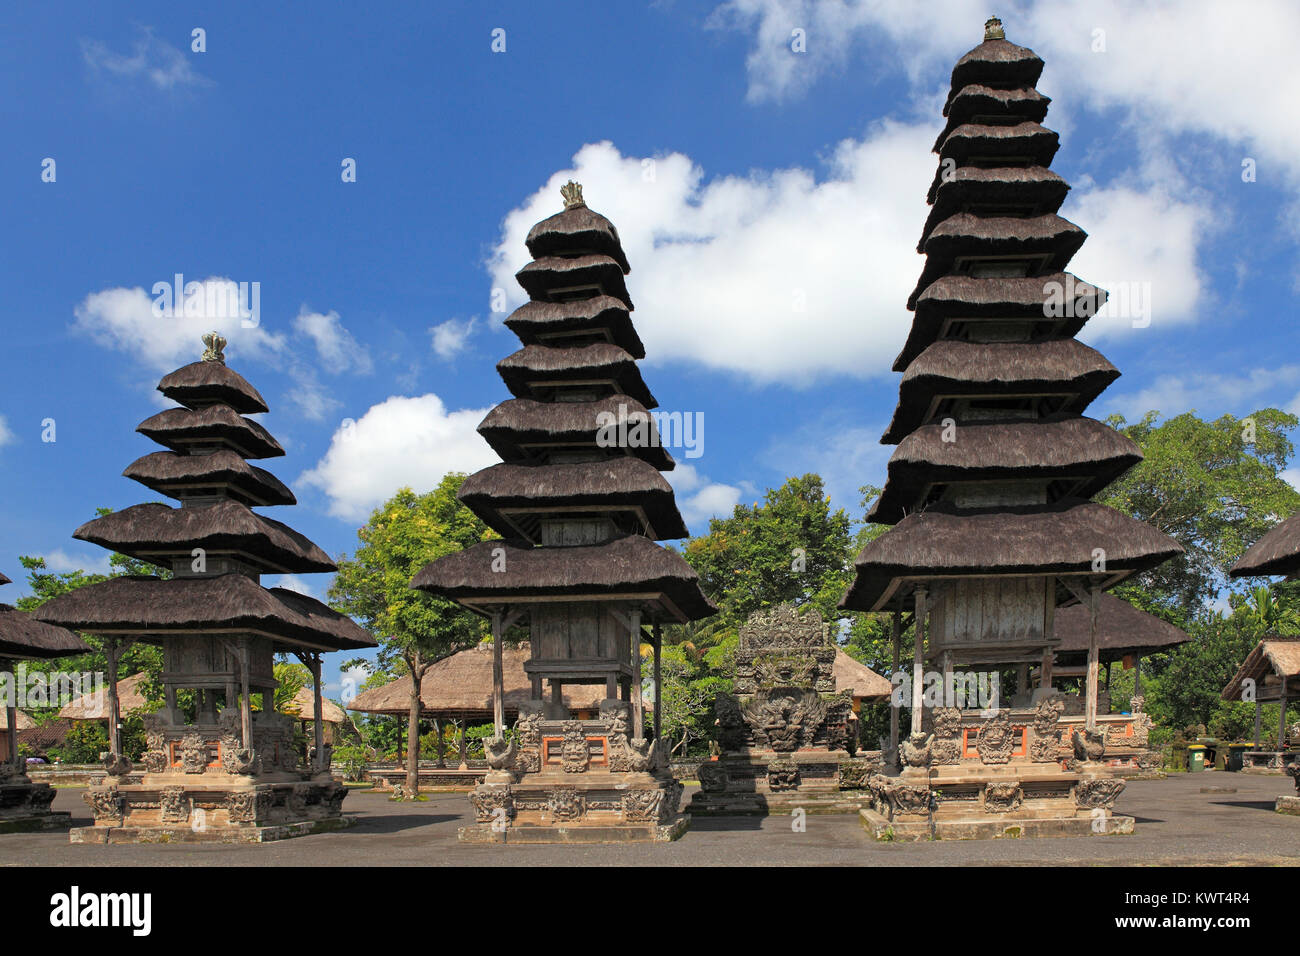 Shrines in the Holy Temple, Utama Mandala, in Pura Taman Ayun, the royal temple at Mengwi, Badung, Bali, Indonesia. - Stock Image